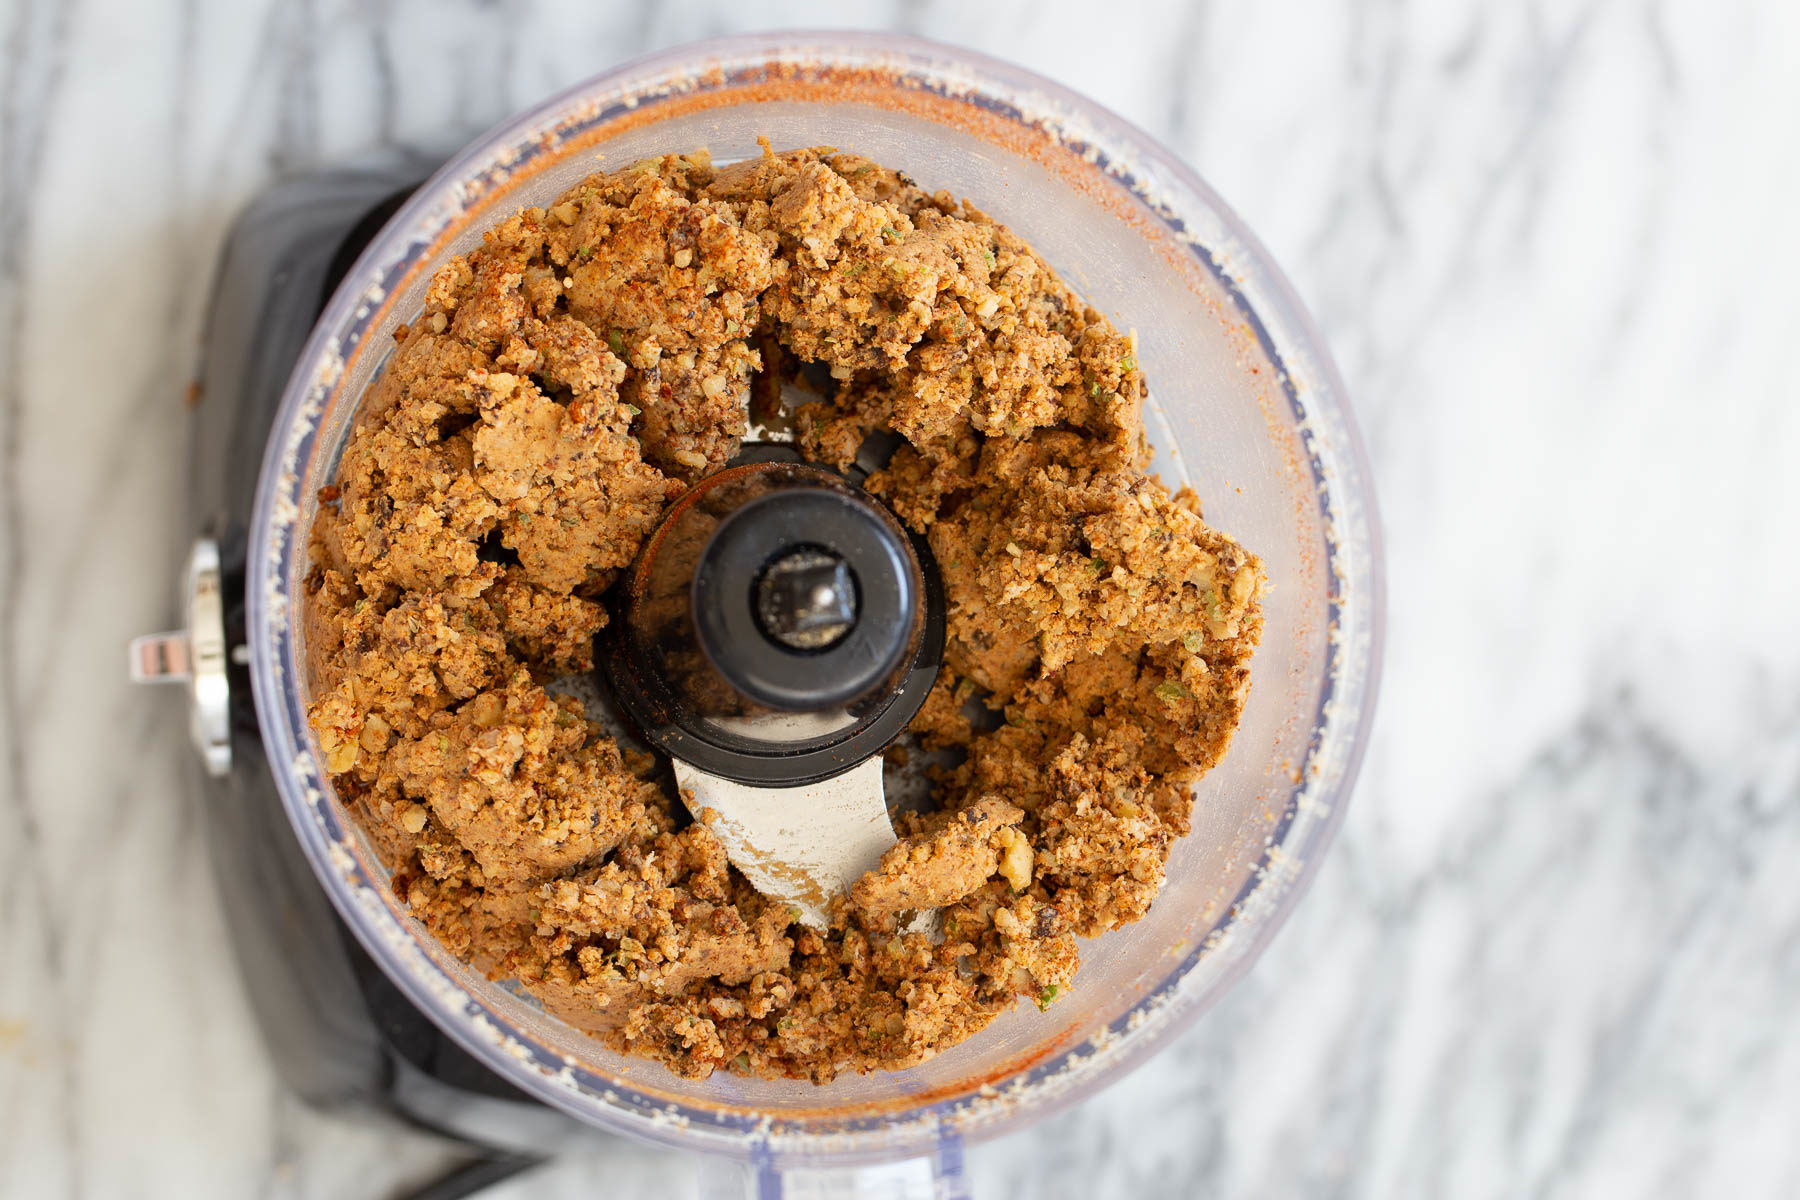 blended chickpea walnut taco meat in a food processor